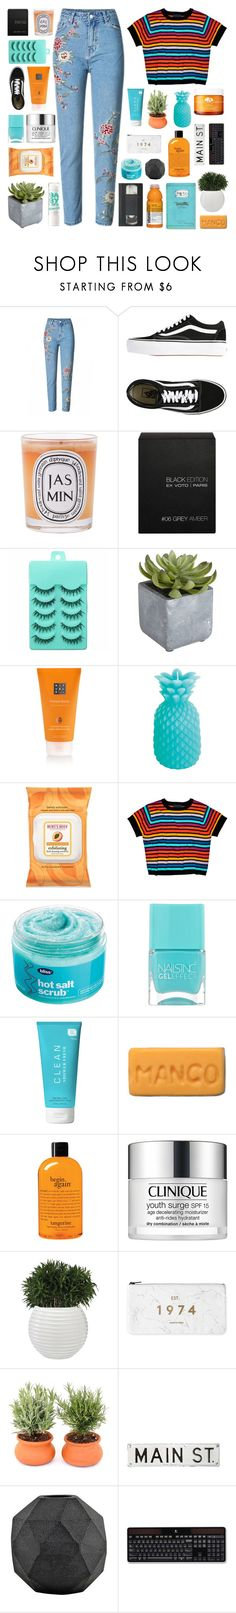 """""""when the bottles done you pull me closer"""" by glued-together ❤ liked on Polyvore featuring Vans, Diptyque, Ex Voto Paris, Pier 1 Imports, Sunnylife, Burt's Bees, Cynthia Rowley, Bliss, Nails Inc. and CLEAN"""